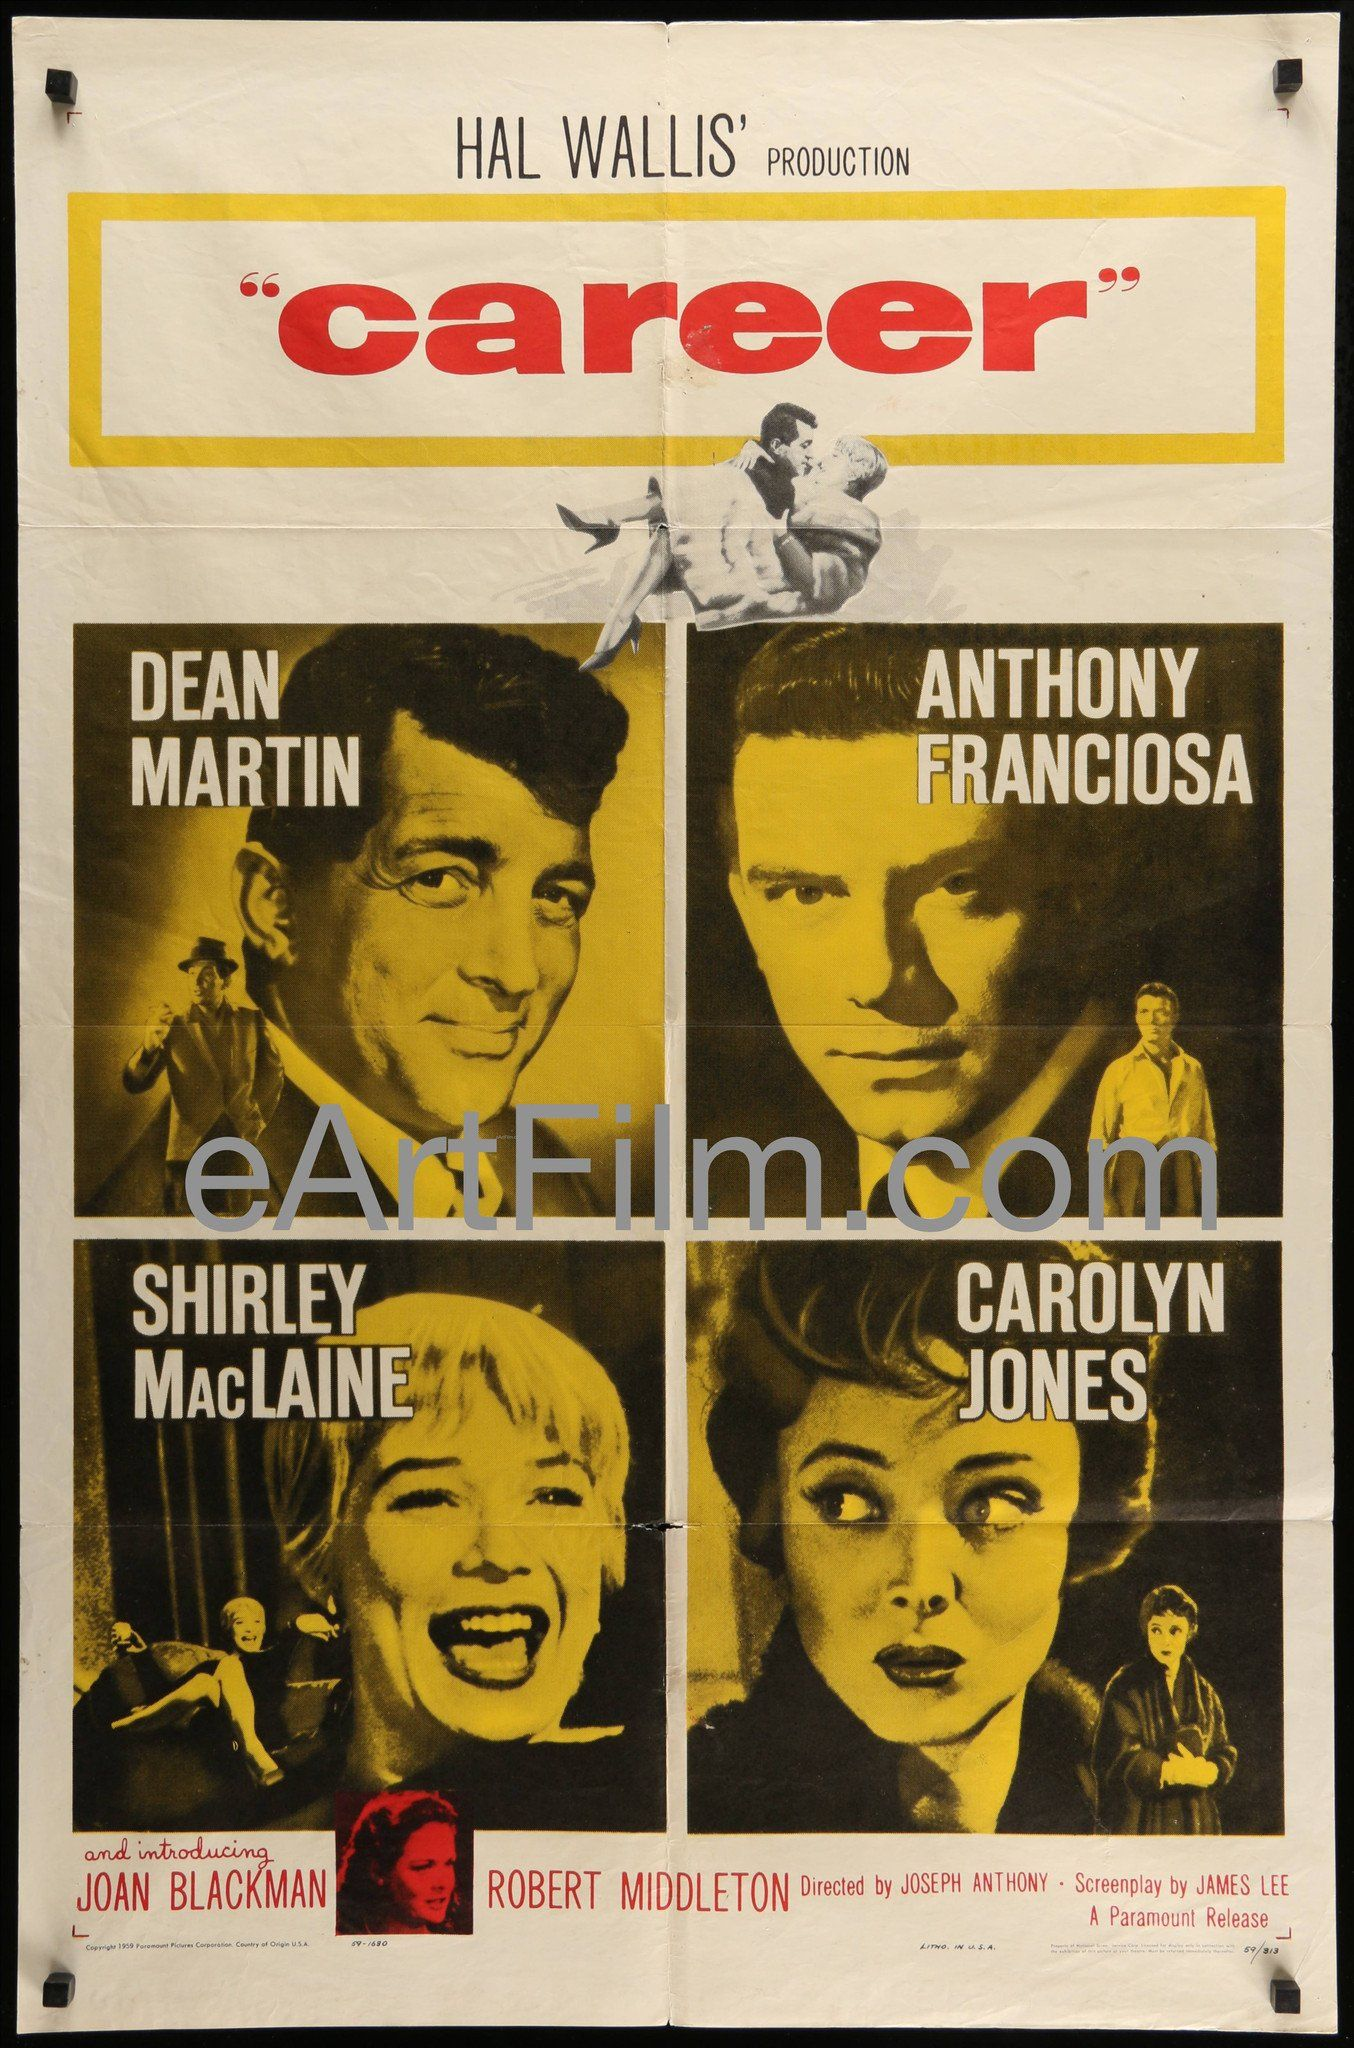 Career 1959 27x41 Original Us Movie Poster Dean Martin Shirley Maclaine Dean Martin This Is Us Movie Movie Posters